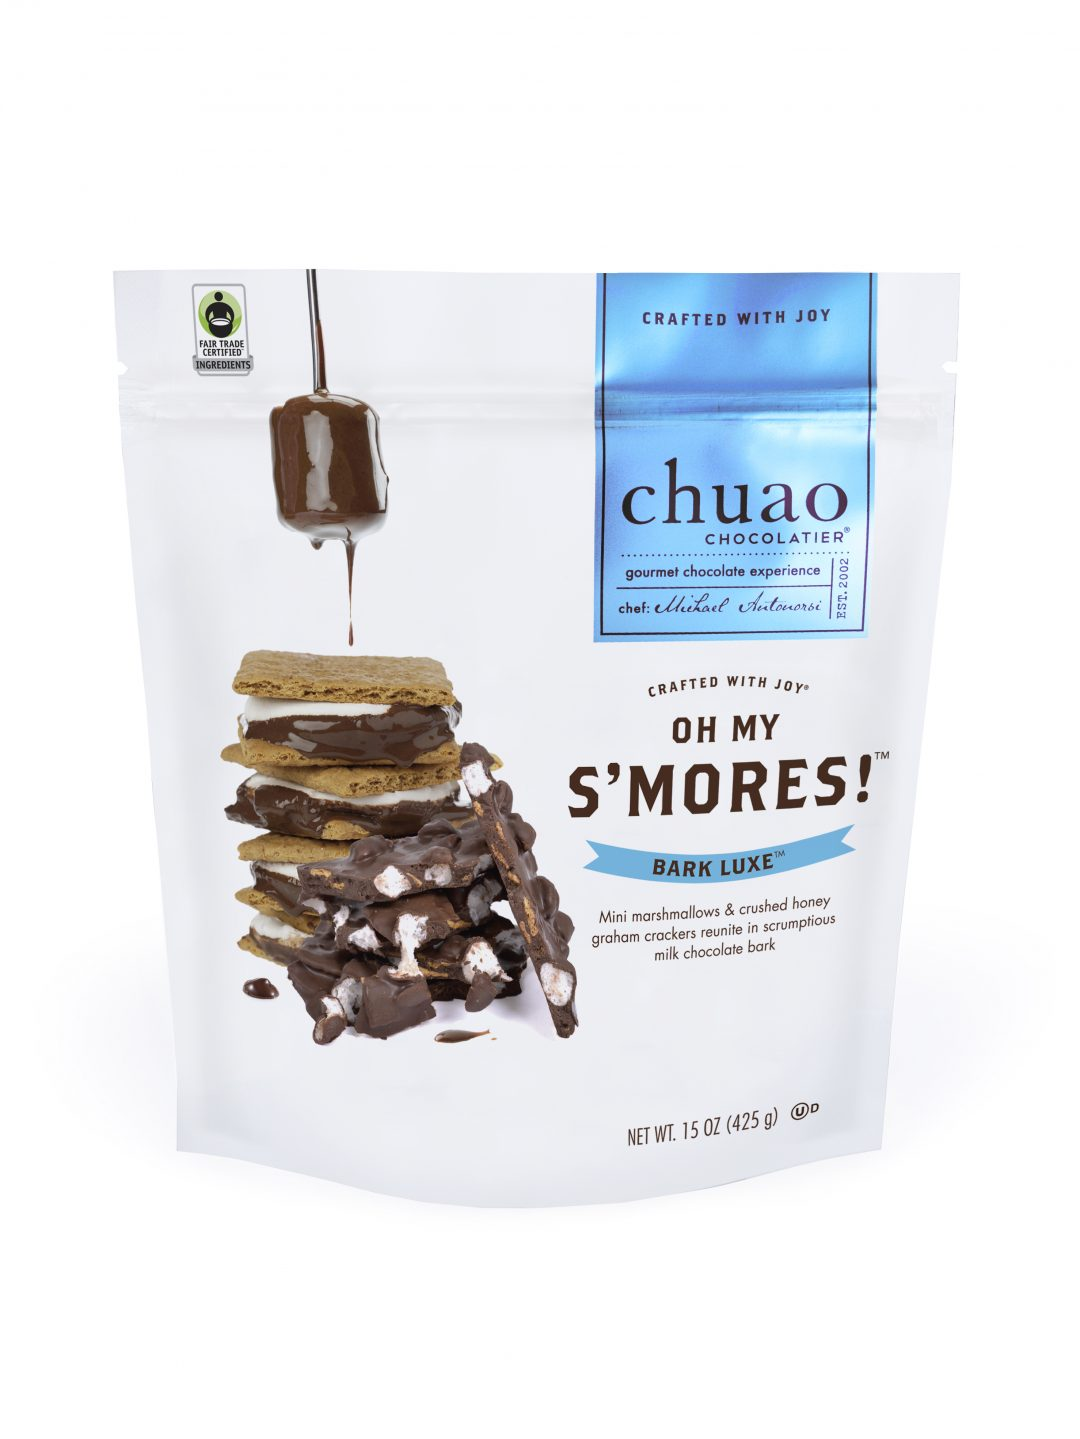 BARK LUXE – Oh My S'mores